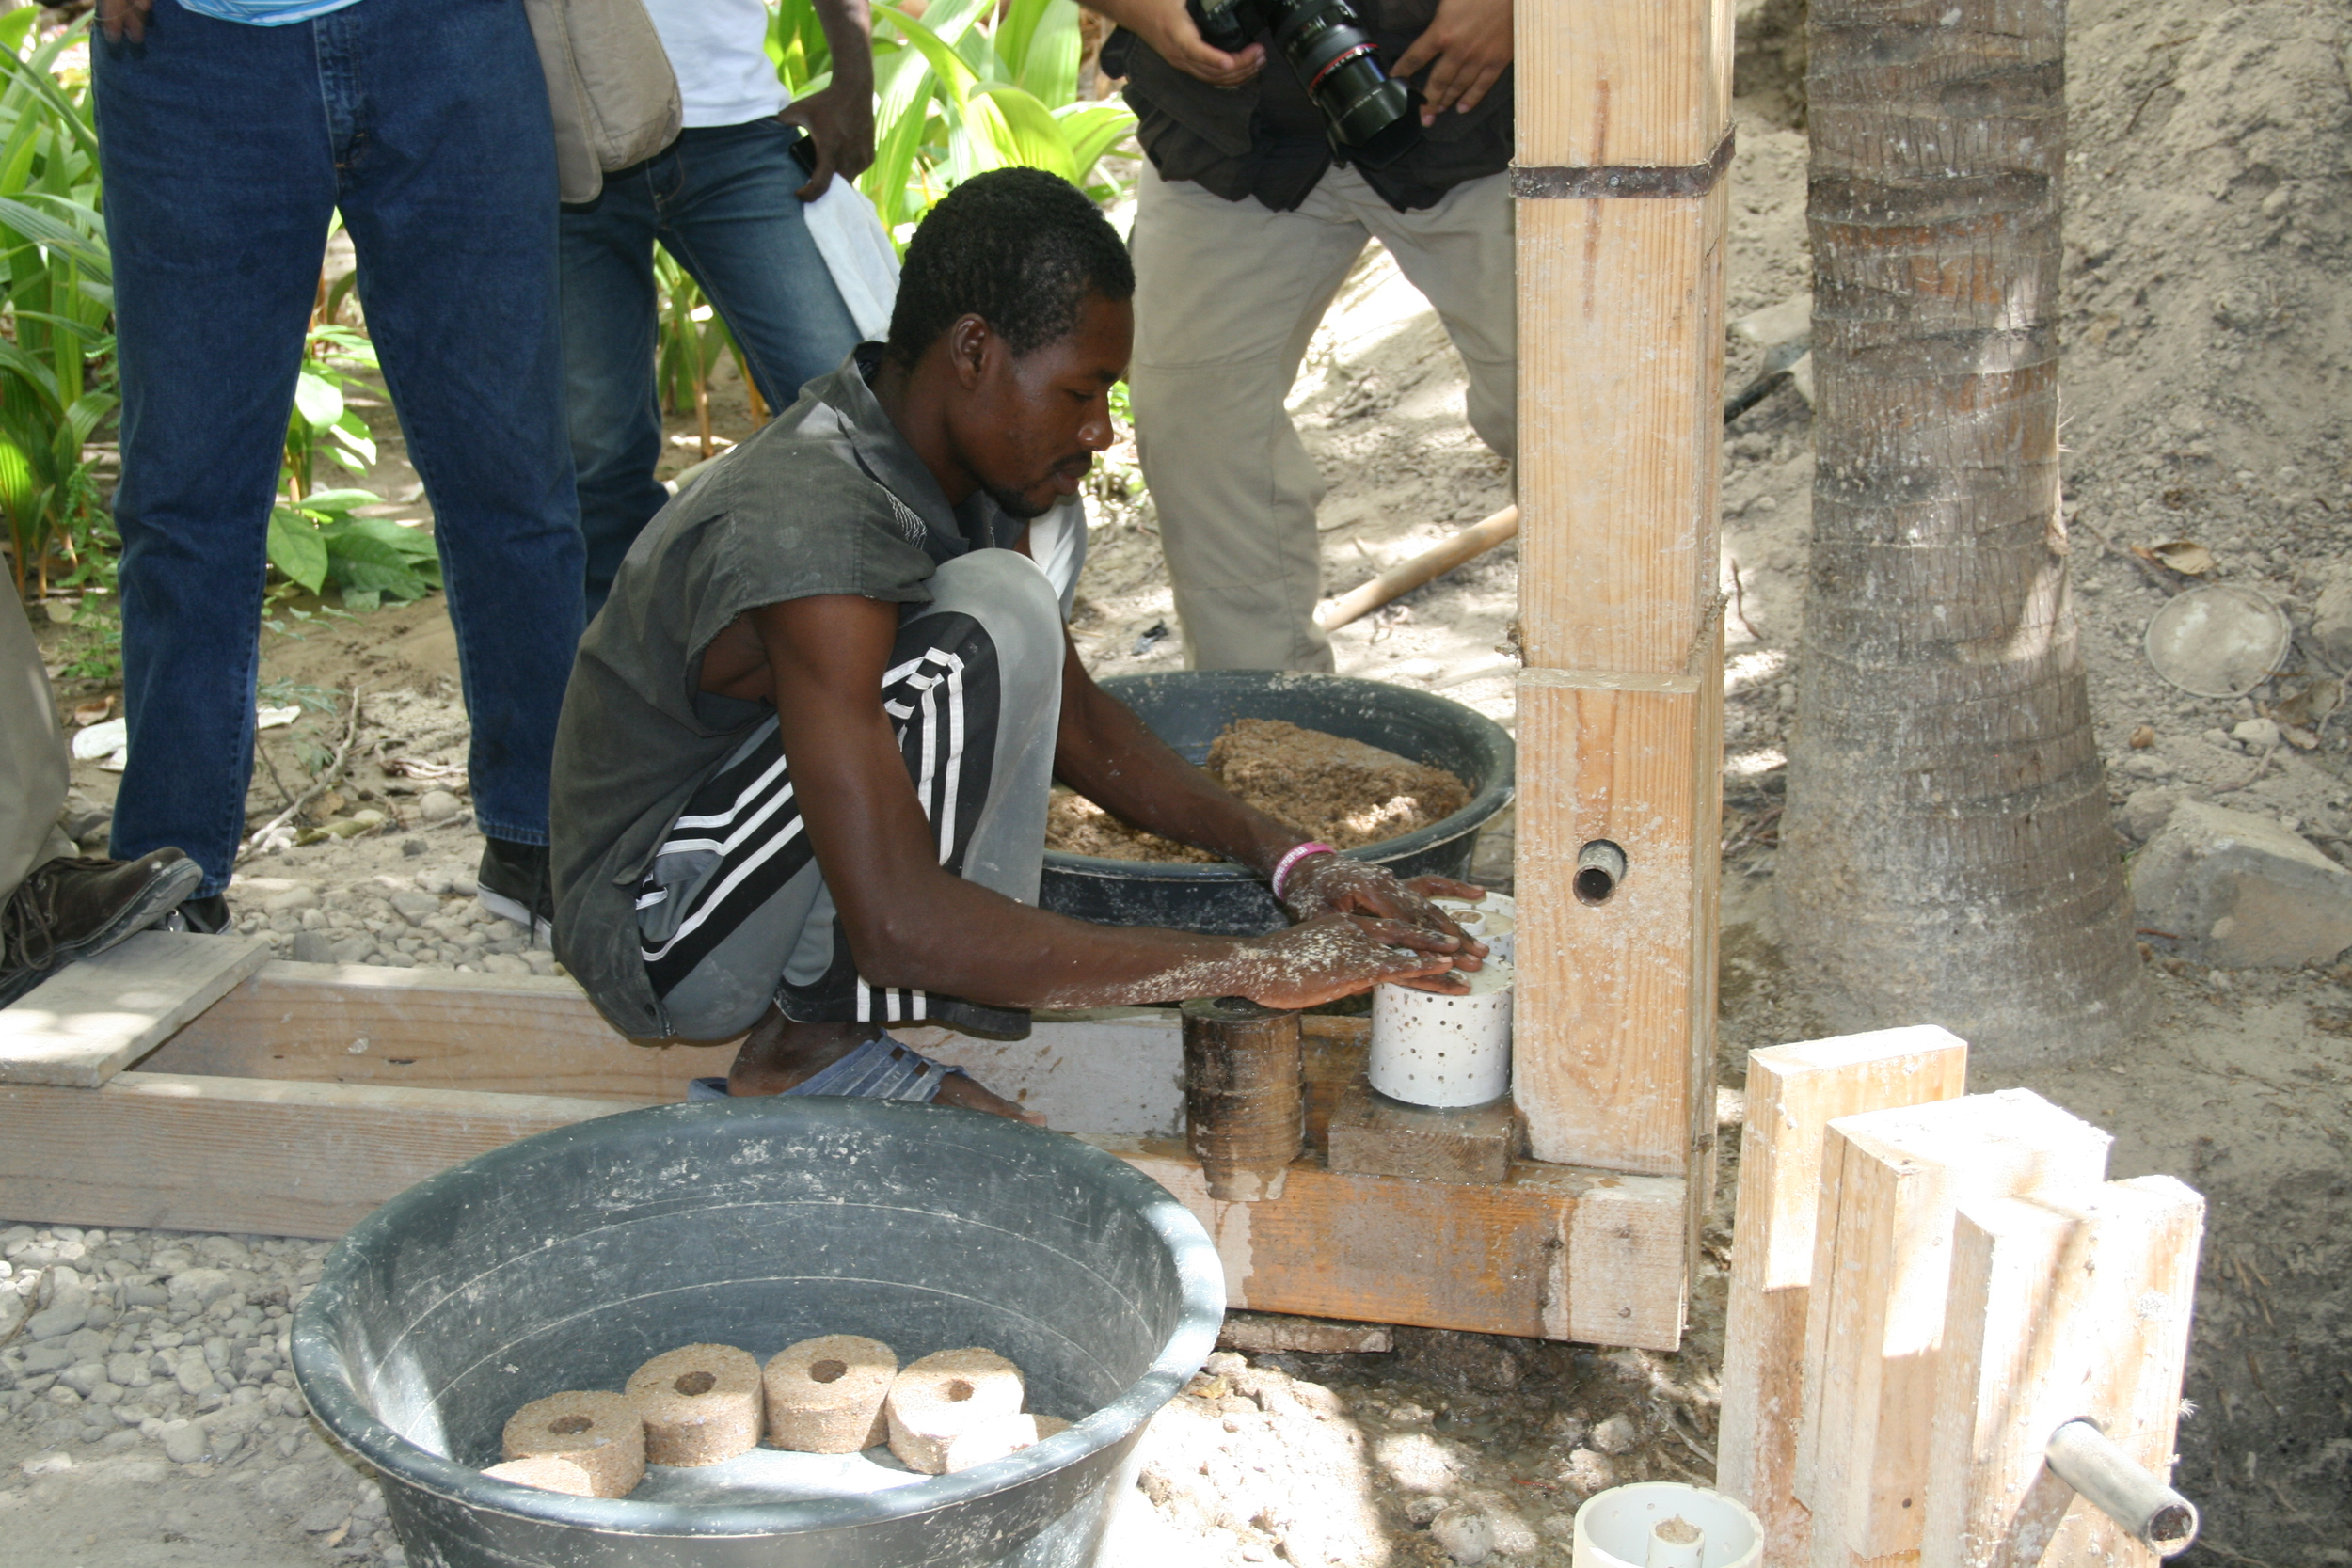 Making the briquettes from recycled trash